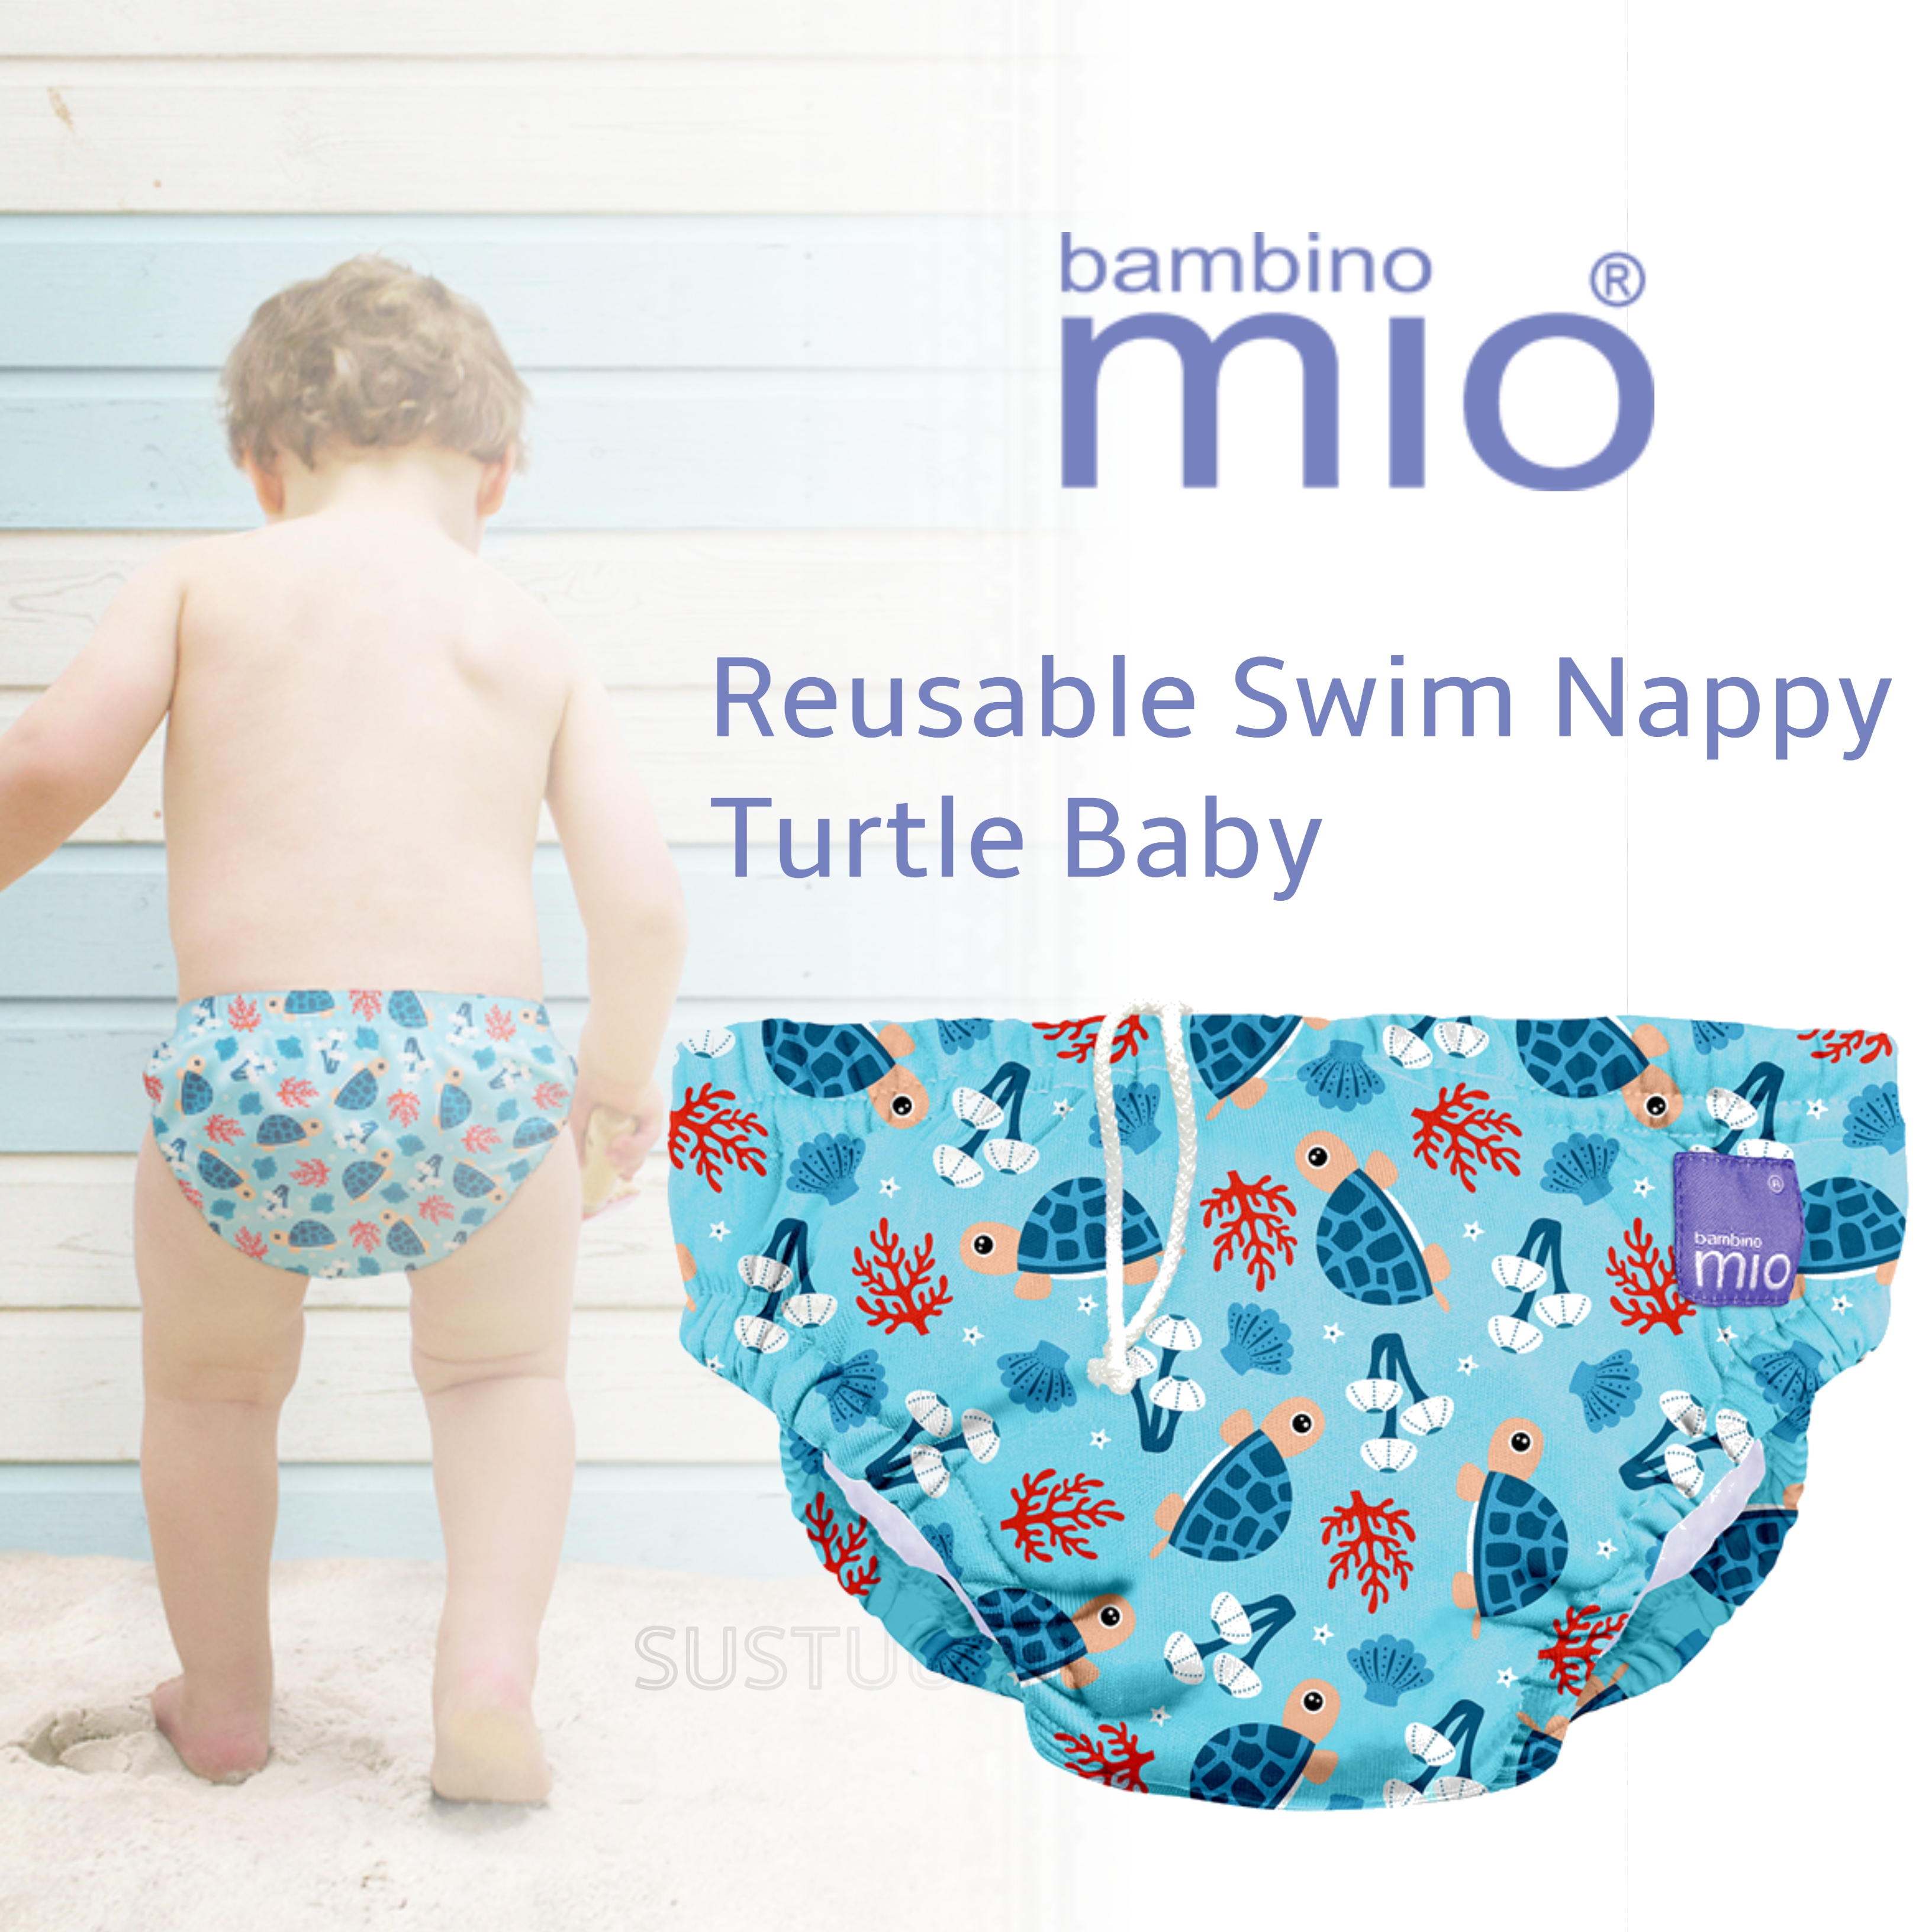 Bambino Mio Reusable Swim Nappy Turtle Baby|Water Resist Layer|Soft Cotton|1-2yrs